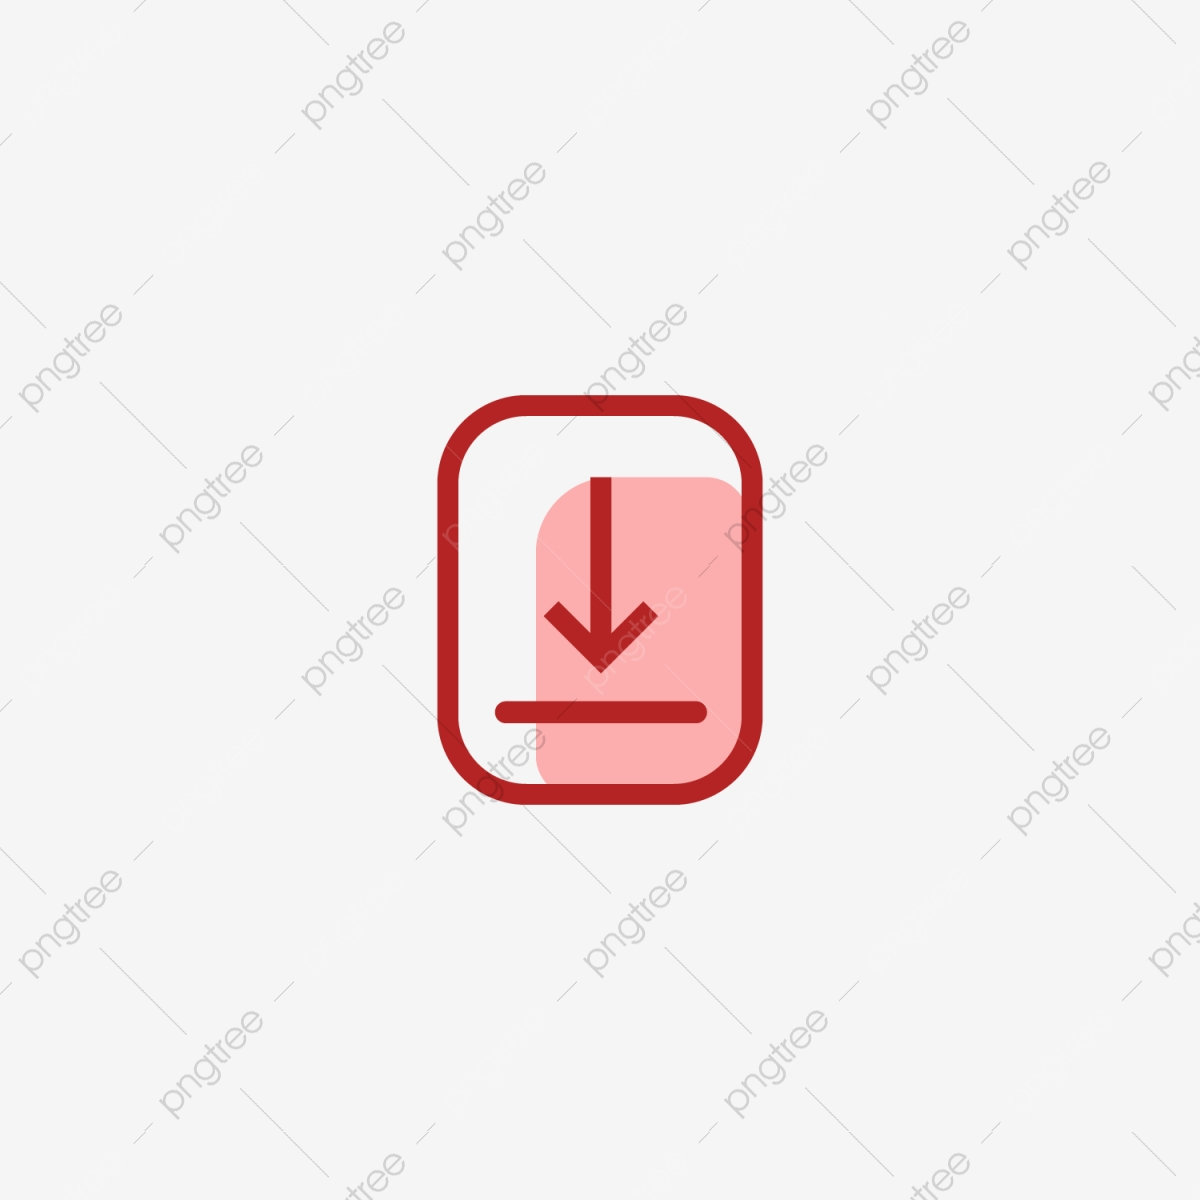 Png Free Buckle Download Icon Cloud Download Download, Icon.